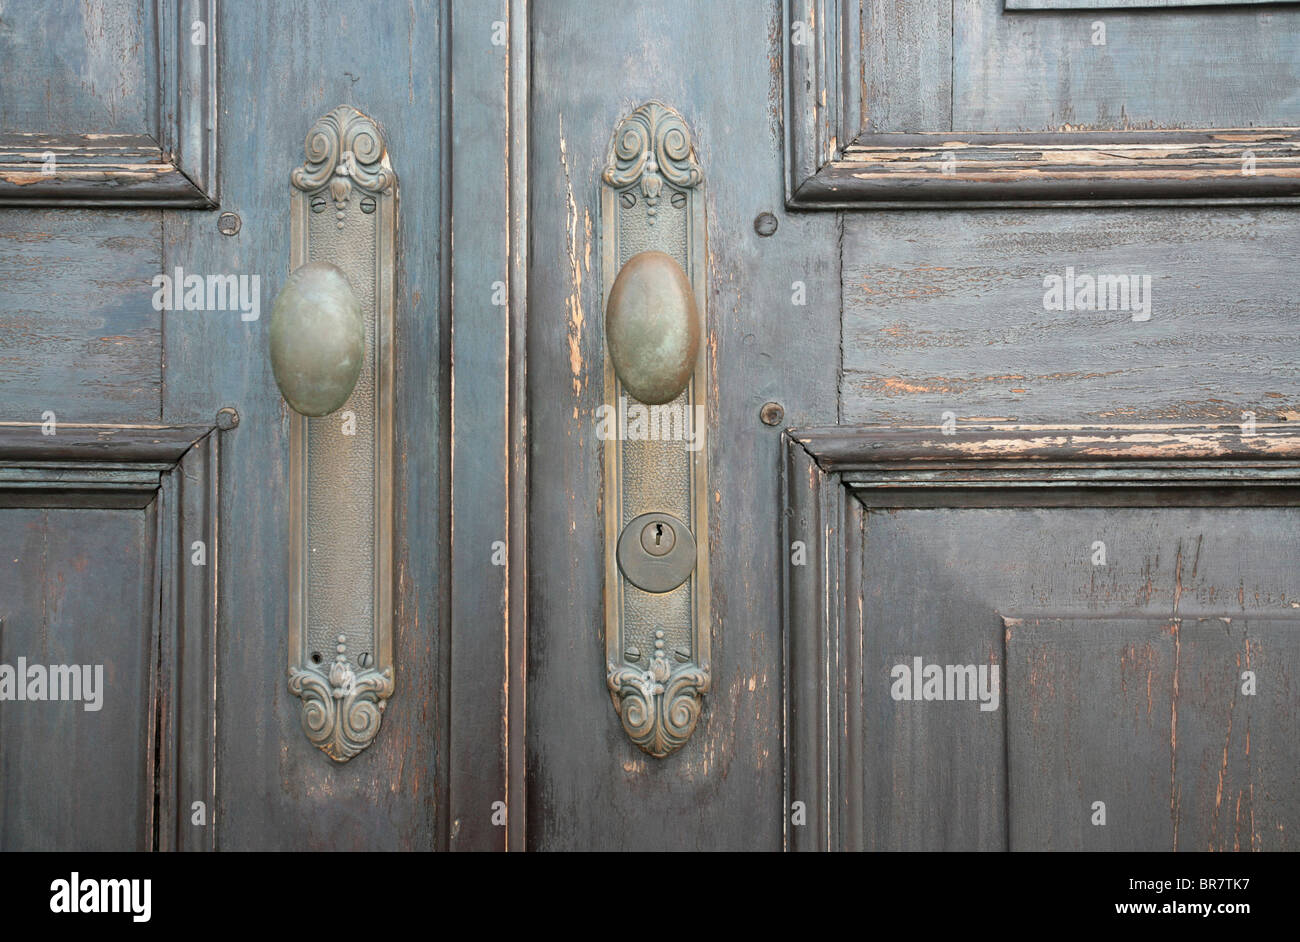 Old doors at the Casco Antiguo of Panama City. - Stock Image